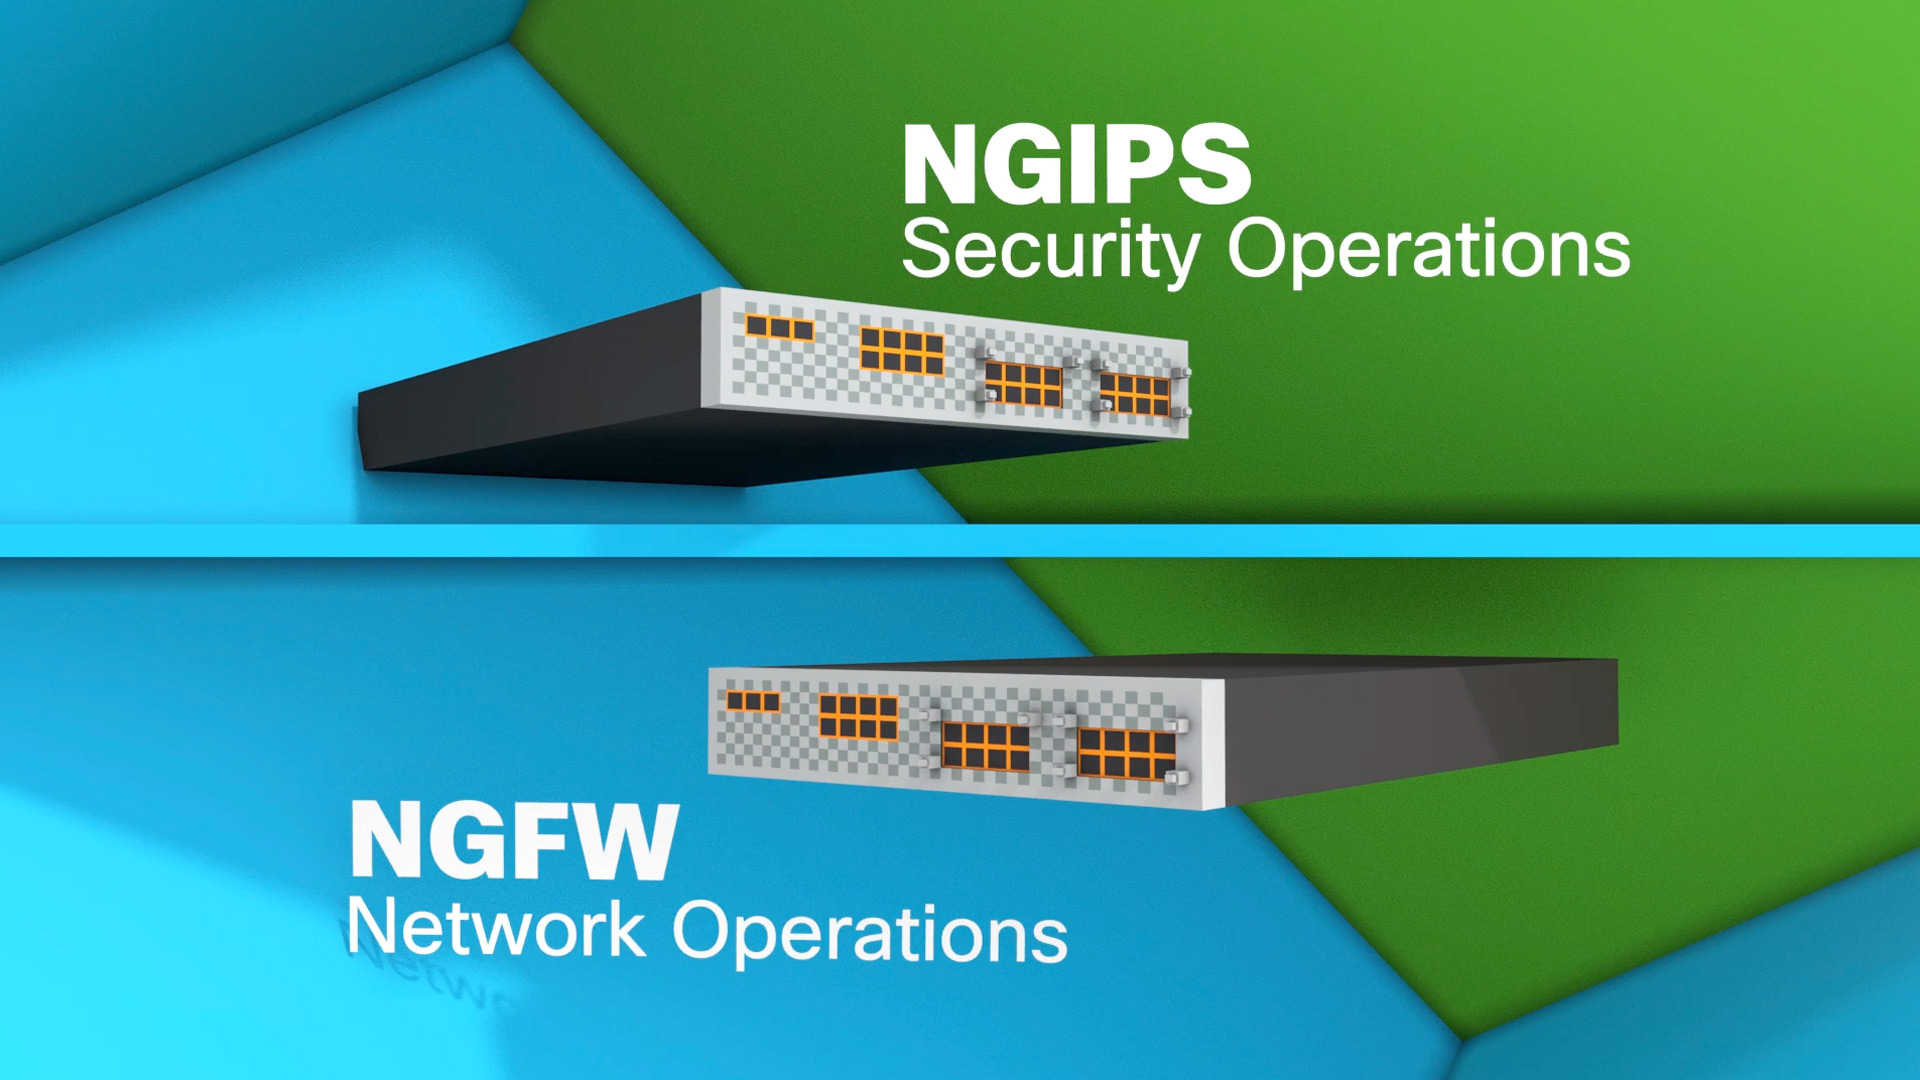 Cisco Firepower NGIPS Key Benefits Video